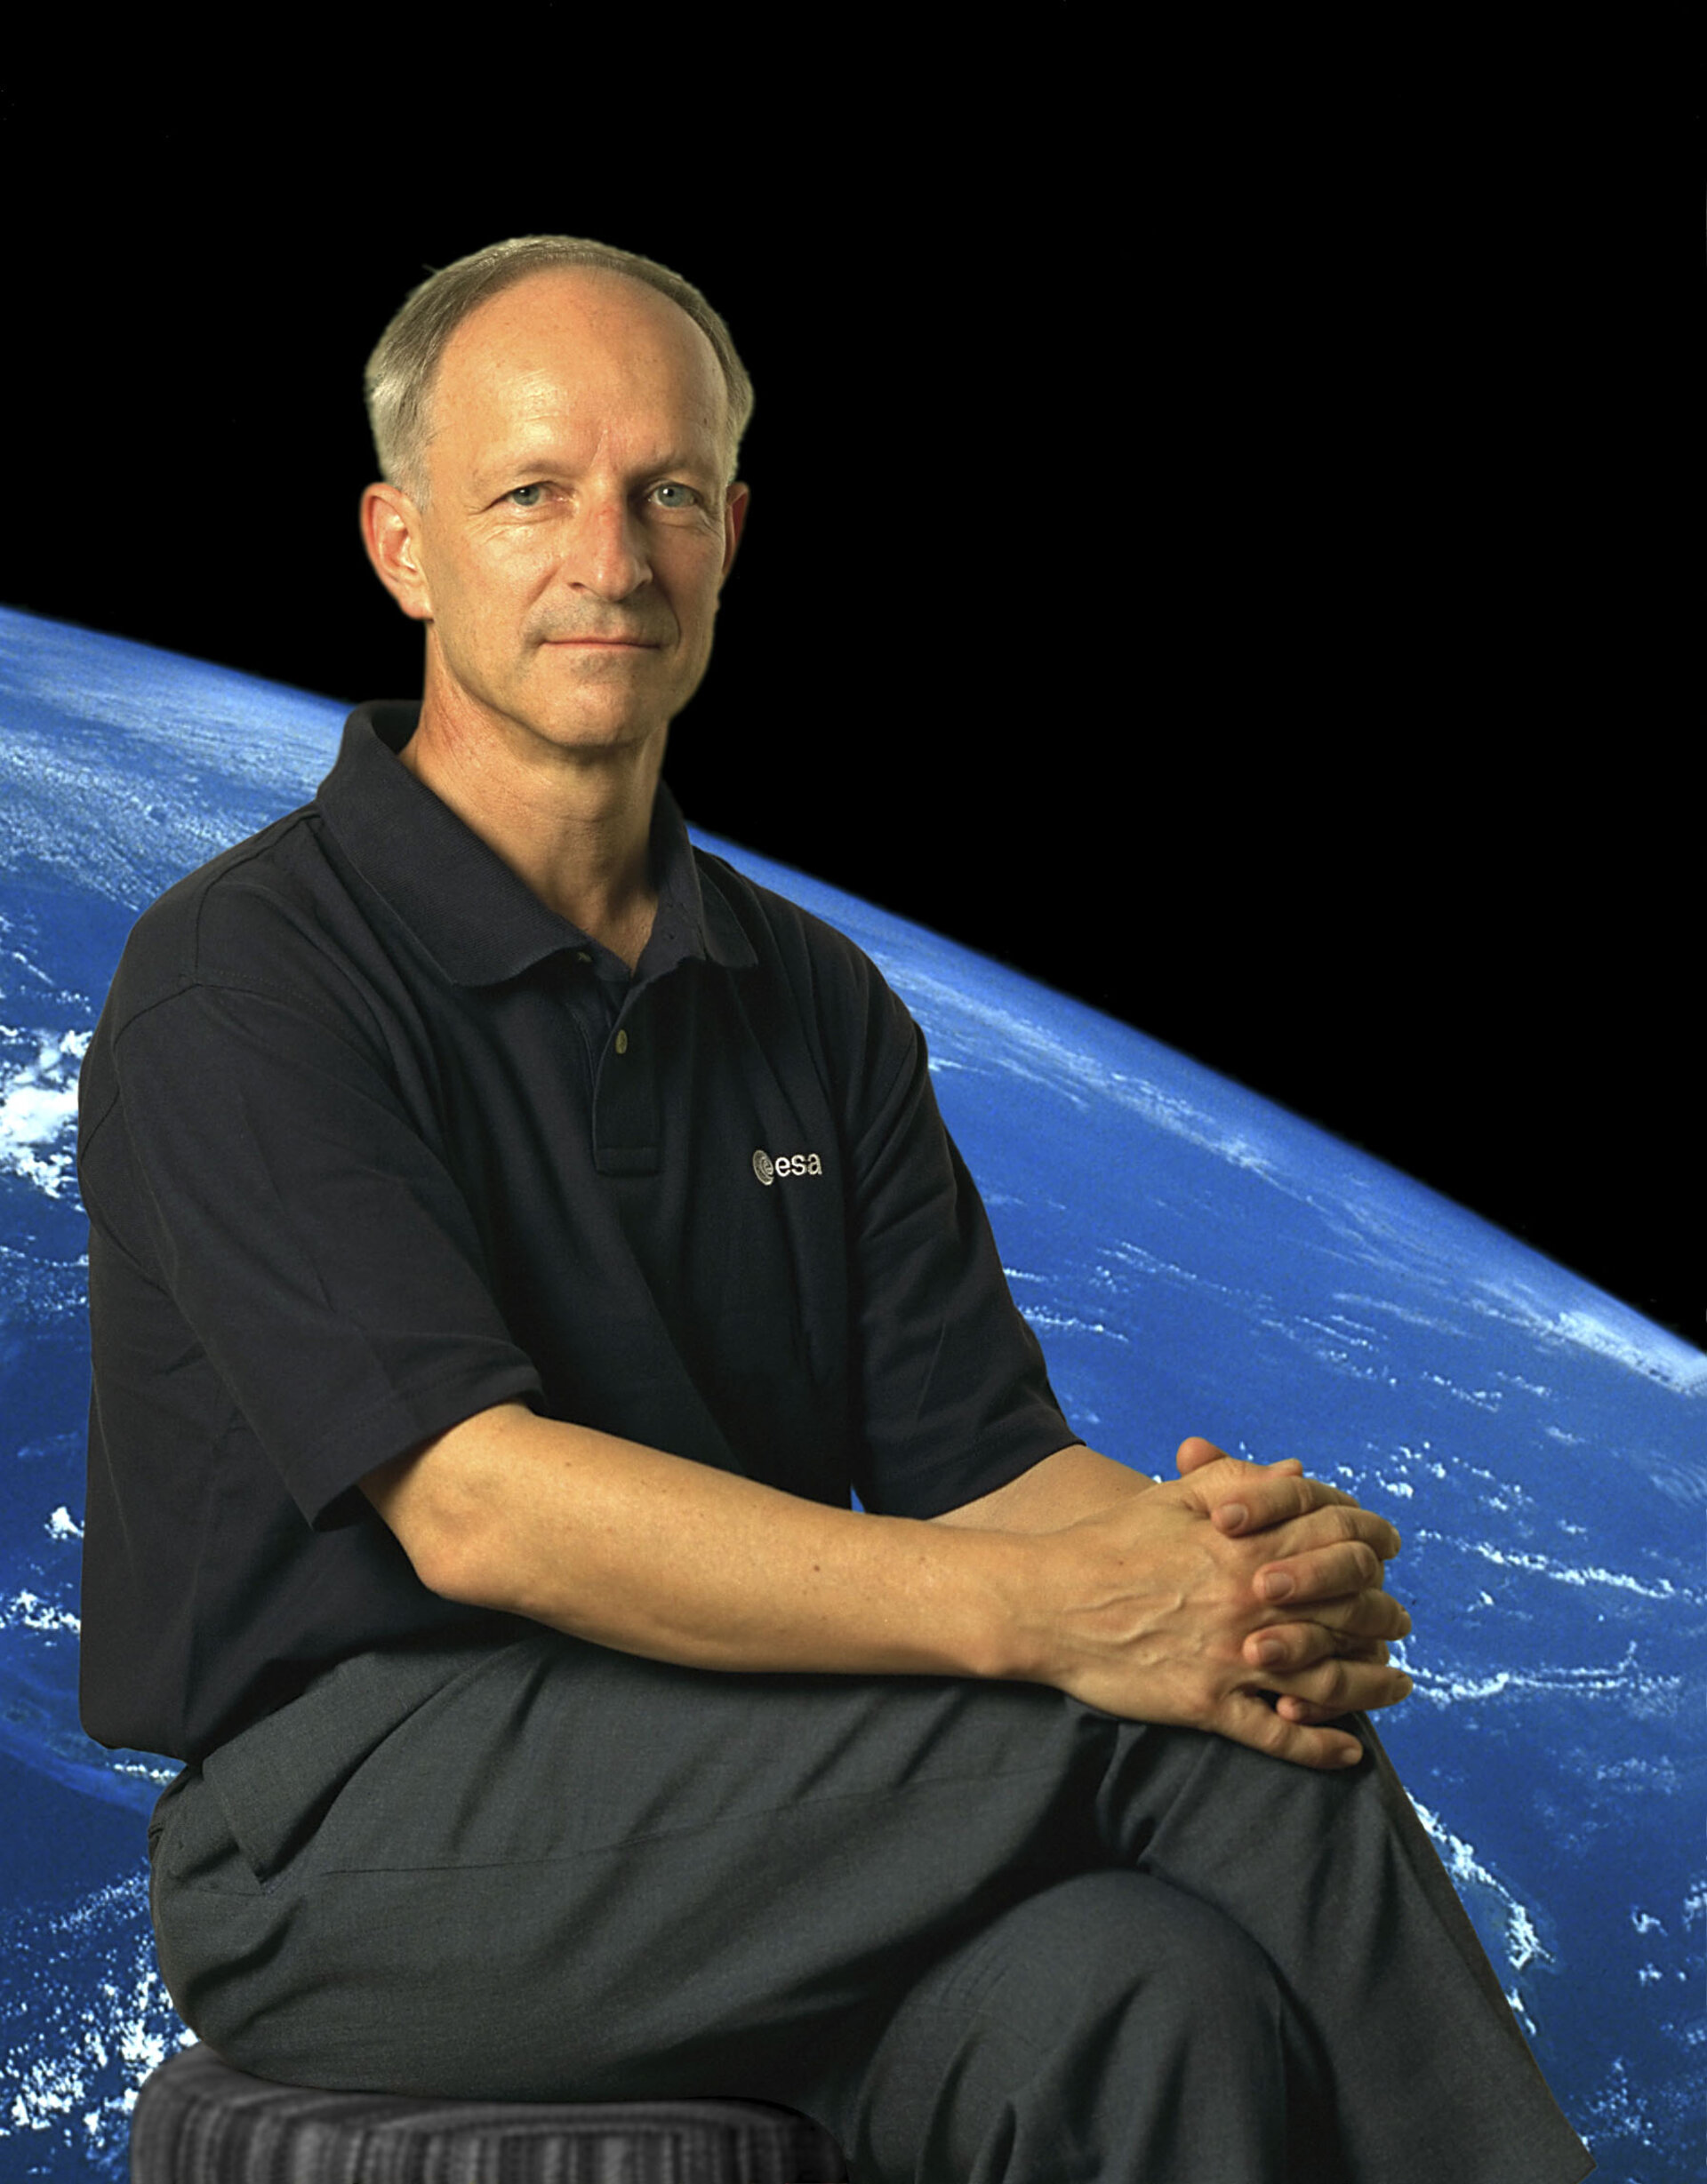 Claude Nicollier, Astronaut of the European Space Agency (ESA)